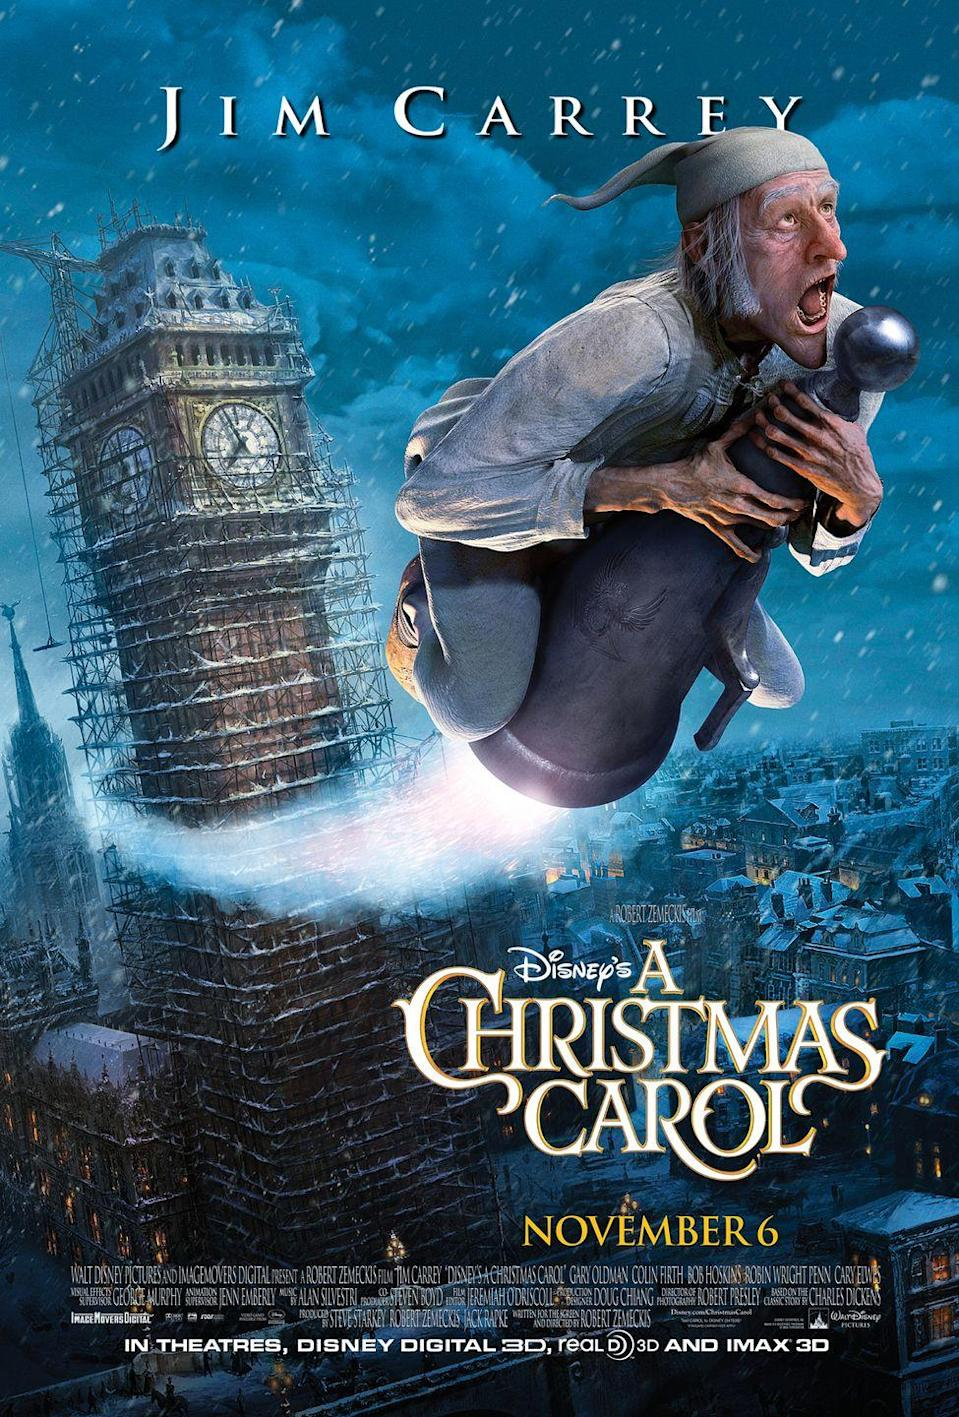 """<p>There are many versions of the Charles Dickens' beloved tale, but this one includes impeccable visuals and Jim Carrey as Ebenezer Scrooge, which permanently places it on our list of holiday film favorites.</p><p><a class=""""link rapid-noclick-resp"""" href=""""https://www.amazon.com/dp/B004EK926K?tag=syn-yahoo-20&ascsubtag=%5Bartid%7C10050.g.5060%5Bsrc%7Cyahoo-us"""" rel=""""nofollow noopener"""" target=""""_blank"""" data-ylk=""""slk:STREAM IT ON PRIME"""">STREAM IT ON PRIME</a></p><p><a class=""""link rapid-noclick-resp"""" href=""""https://go.redirectingat.com?id=74968X1596630&url=https%3A%2F%2Fwww.disneyplus.com%2Fmovies%2Fdisneys-a-christmas-carol%2FQnakzyiFzOeP&sref=https%3A%2F%2Fwww.countryliving.com%2Flife%2Fentertainment%2Fg5060%2Fbest-disney-christmas-movies%2F"""" rel=""""nofollow noopener"""" target=""""_blank"""" data-ylk=""""slk:STREAM IT ON DISNEY+"""">STREAM IT ON DISNEY+</a><br></p>"""